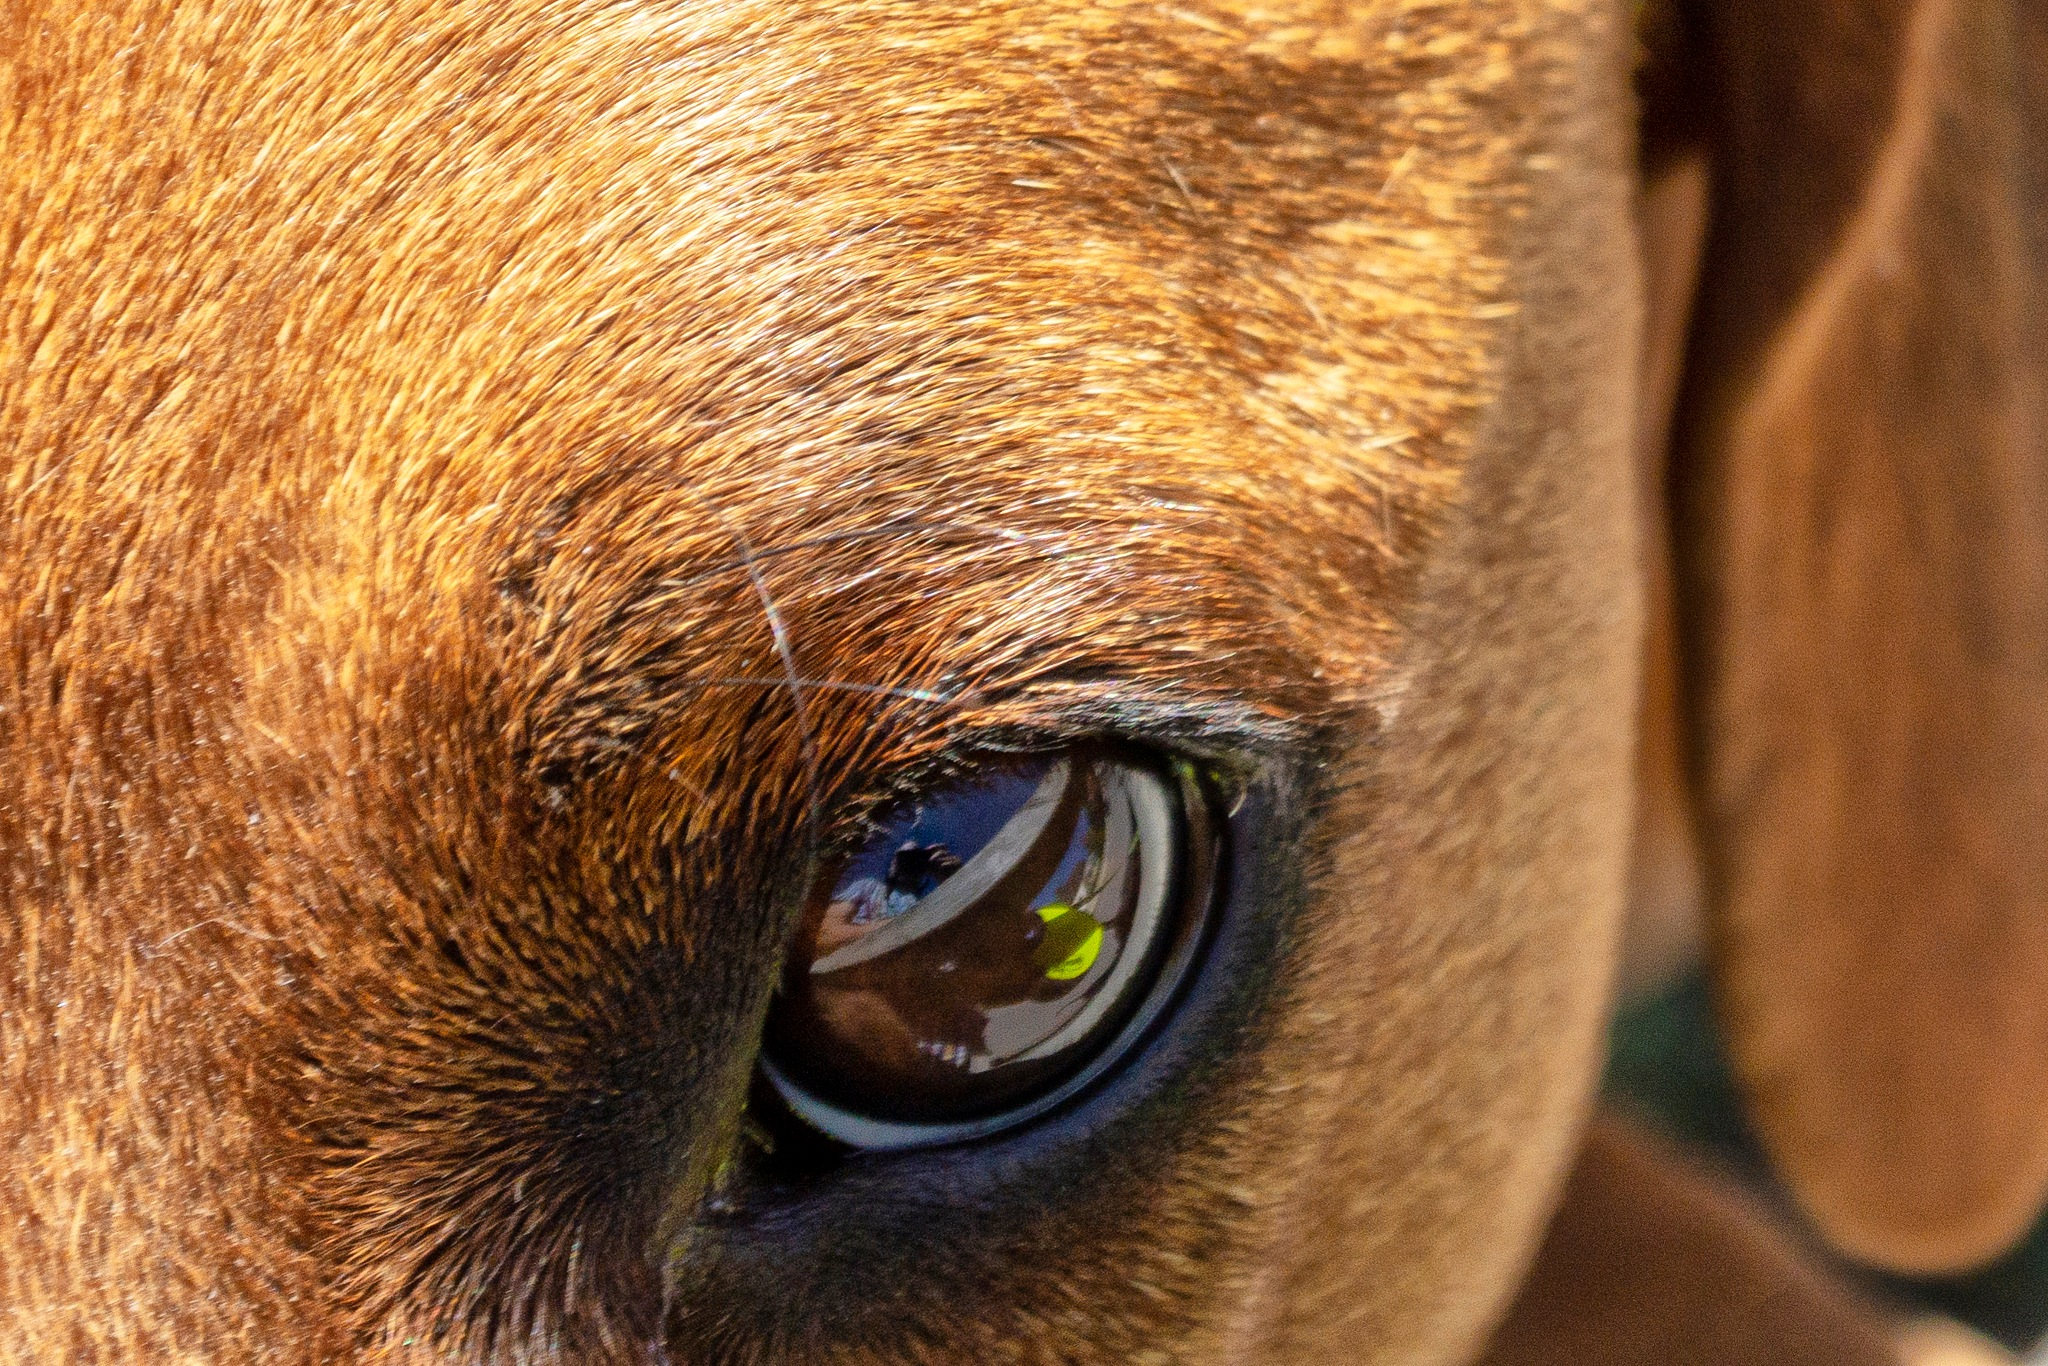 Reflections in a Dogs Eye by carljan w carlsson